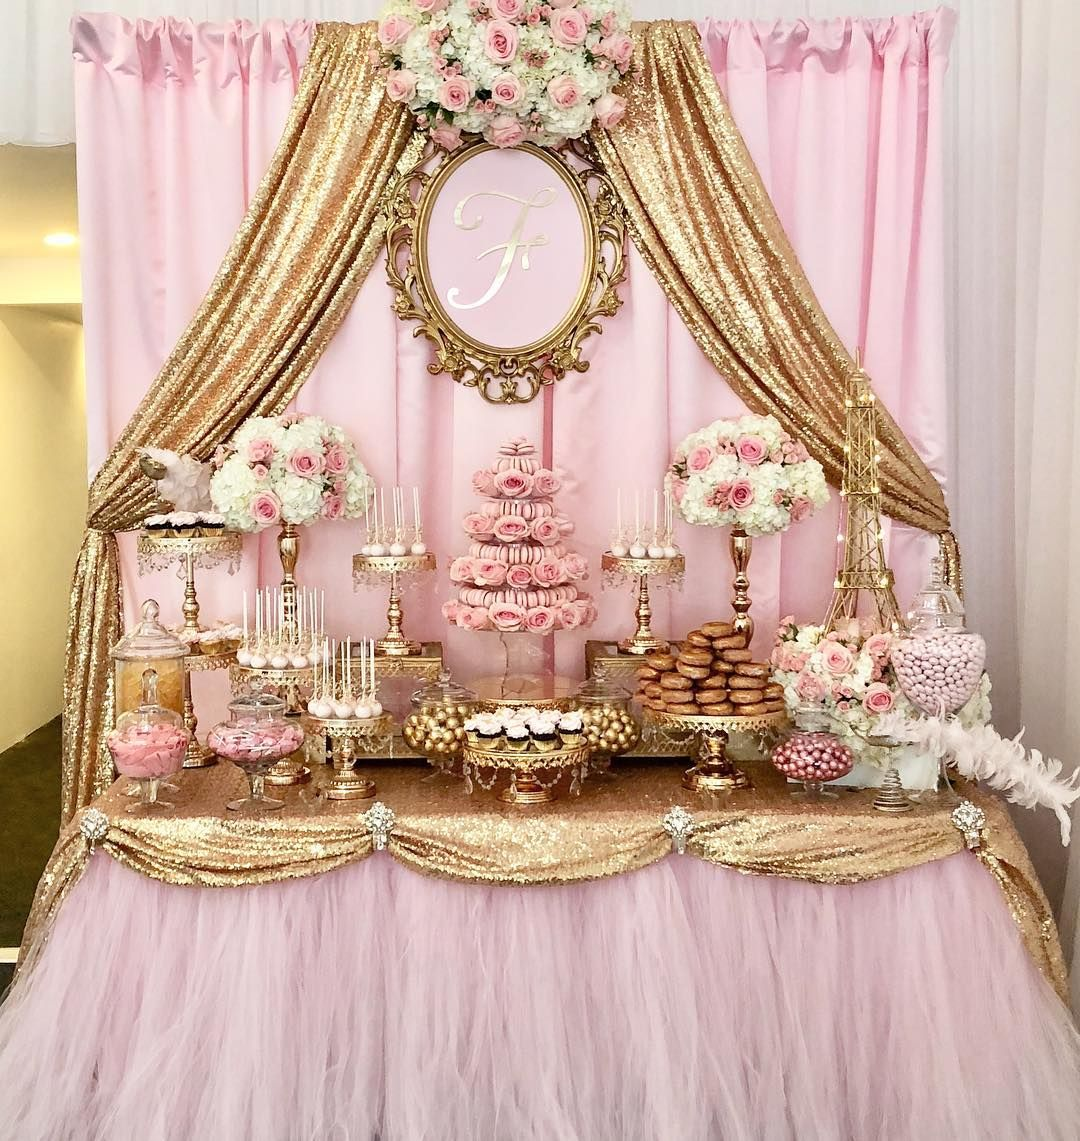 Paris Theme Sweet 16 Event At The Palace Banquet Hall In